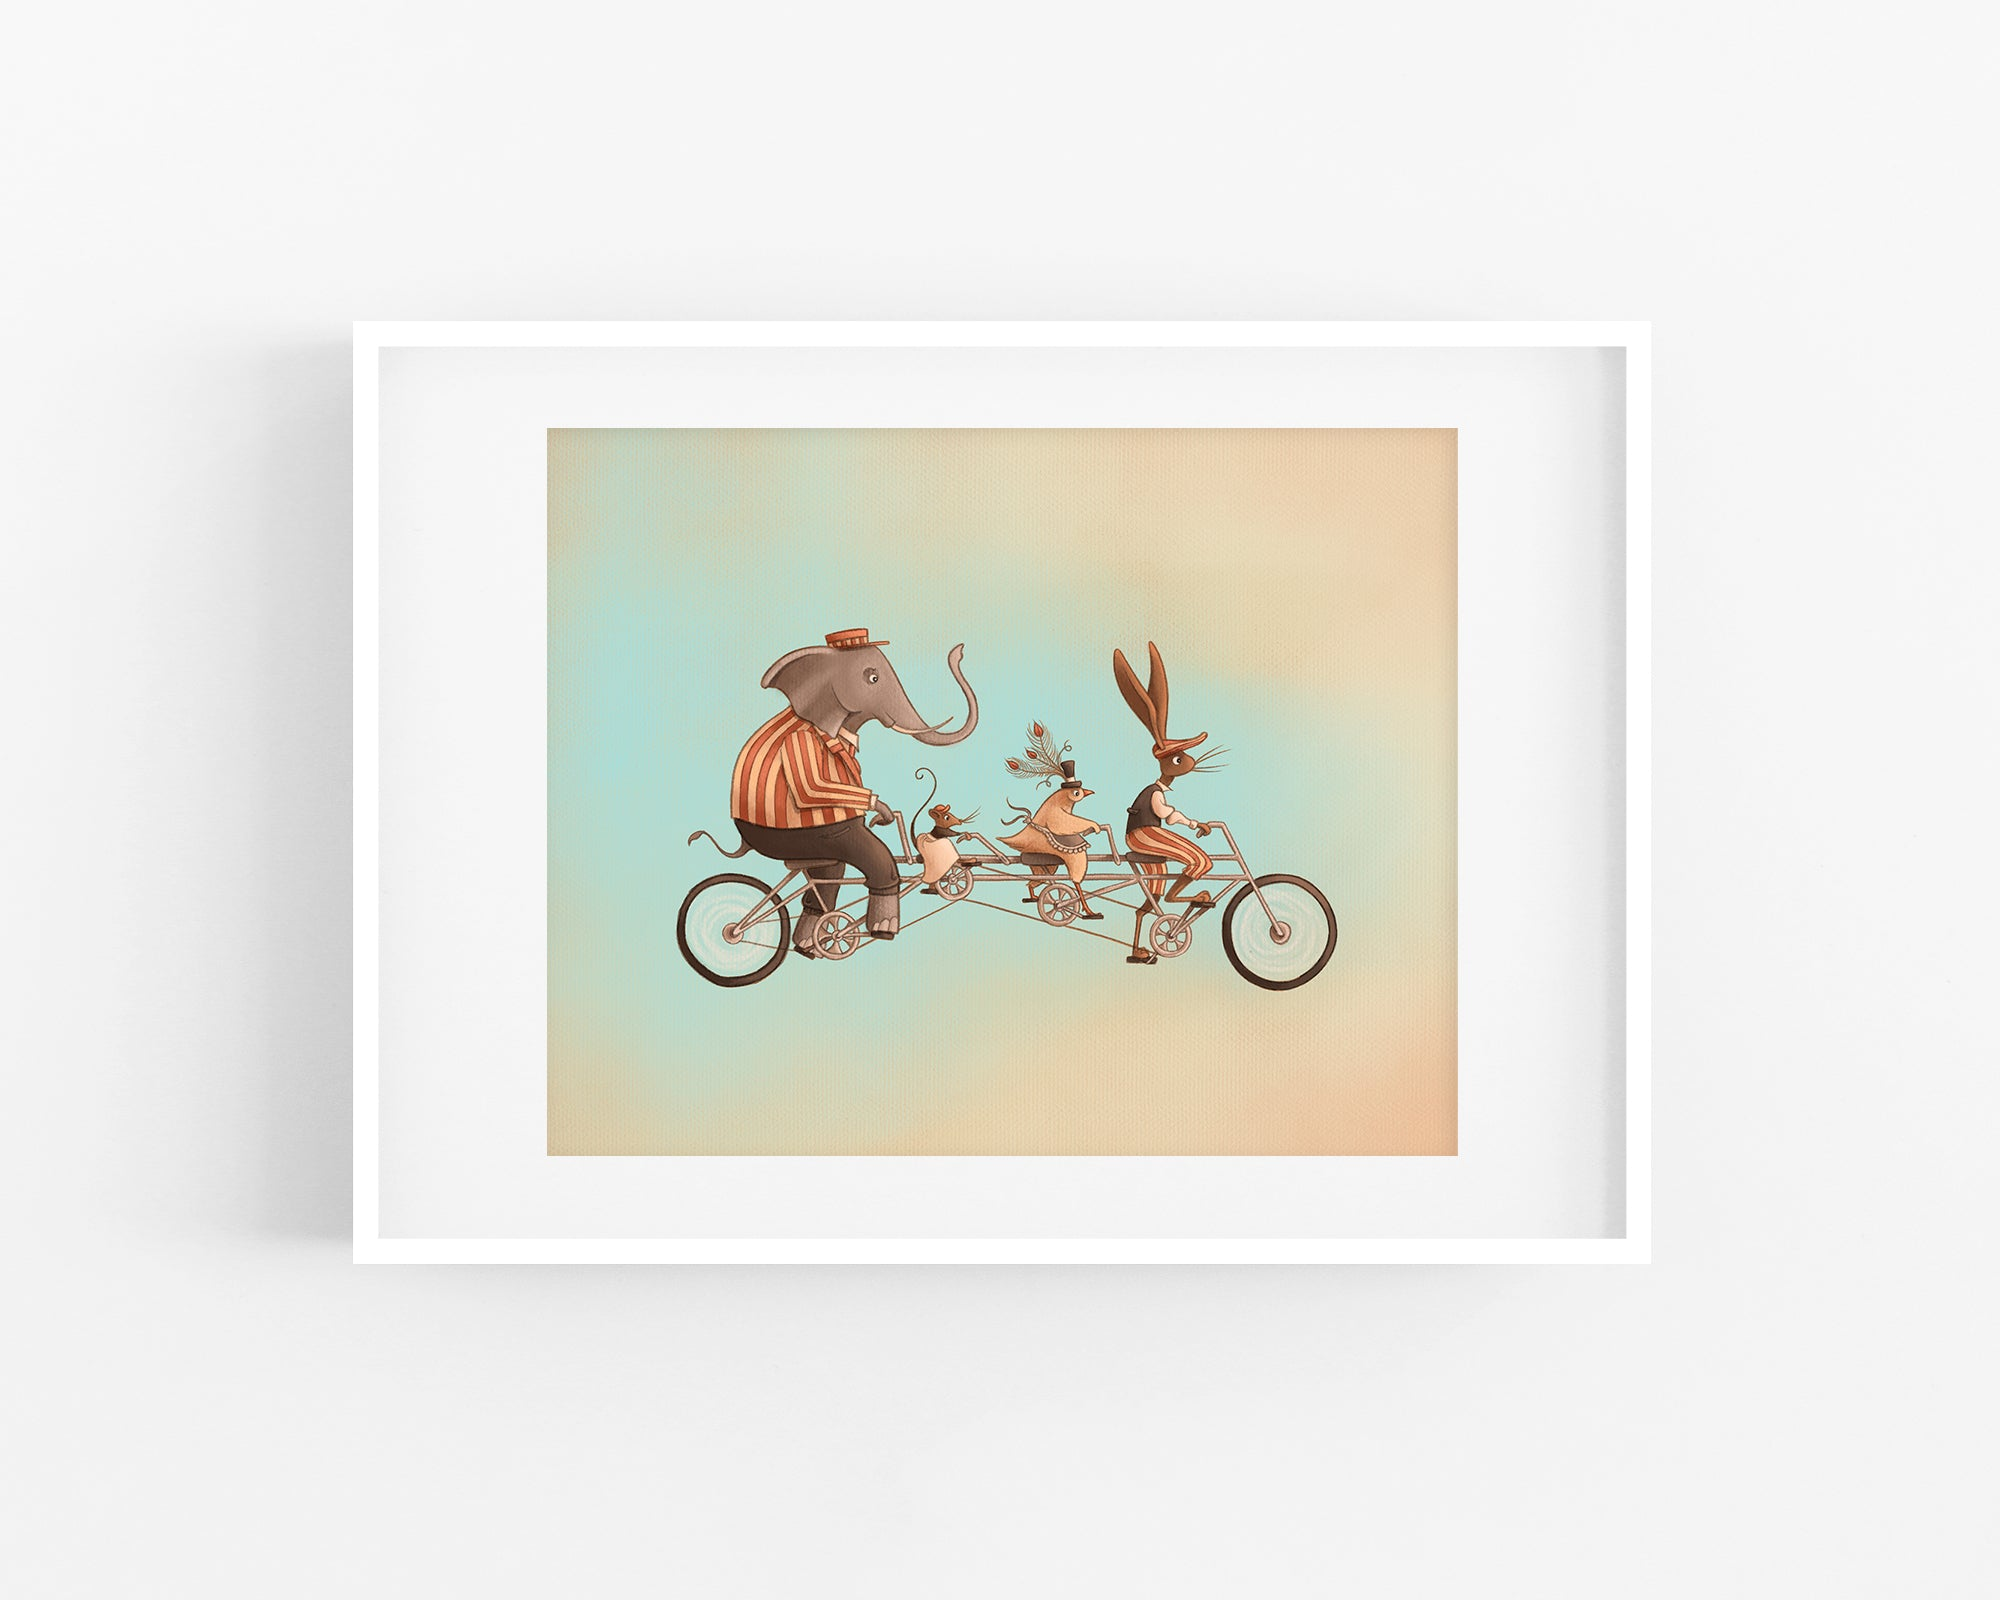 Tandem Print - Full Image placed in a frame for display purposes. Image shows an elephant, a mouse, a chicken, and a rabbit wearing old fashioned clothing and riding a tandem bicycle.